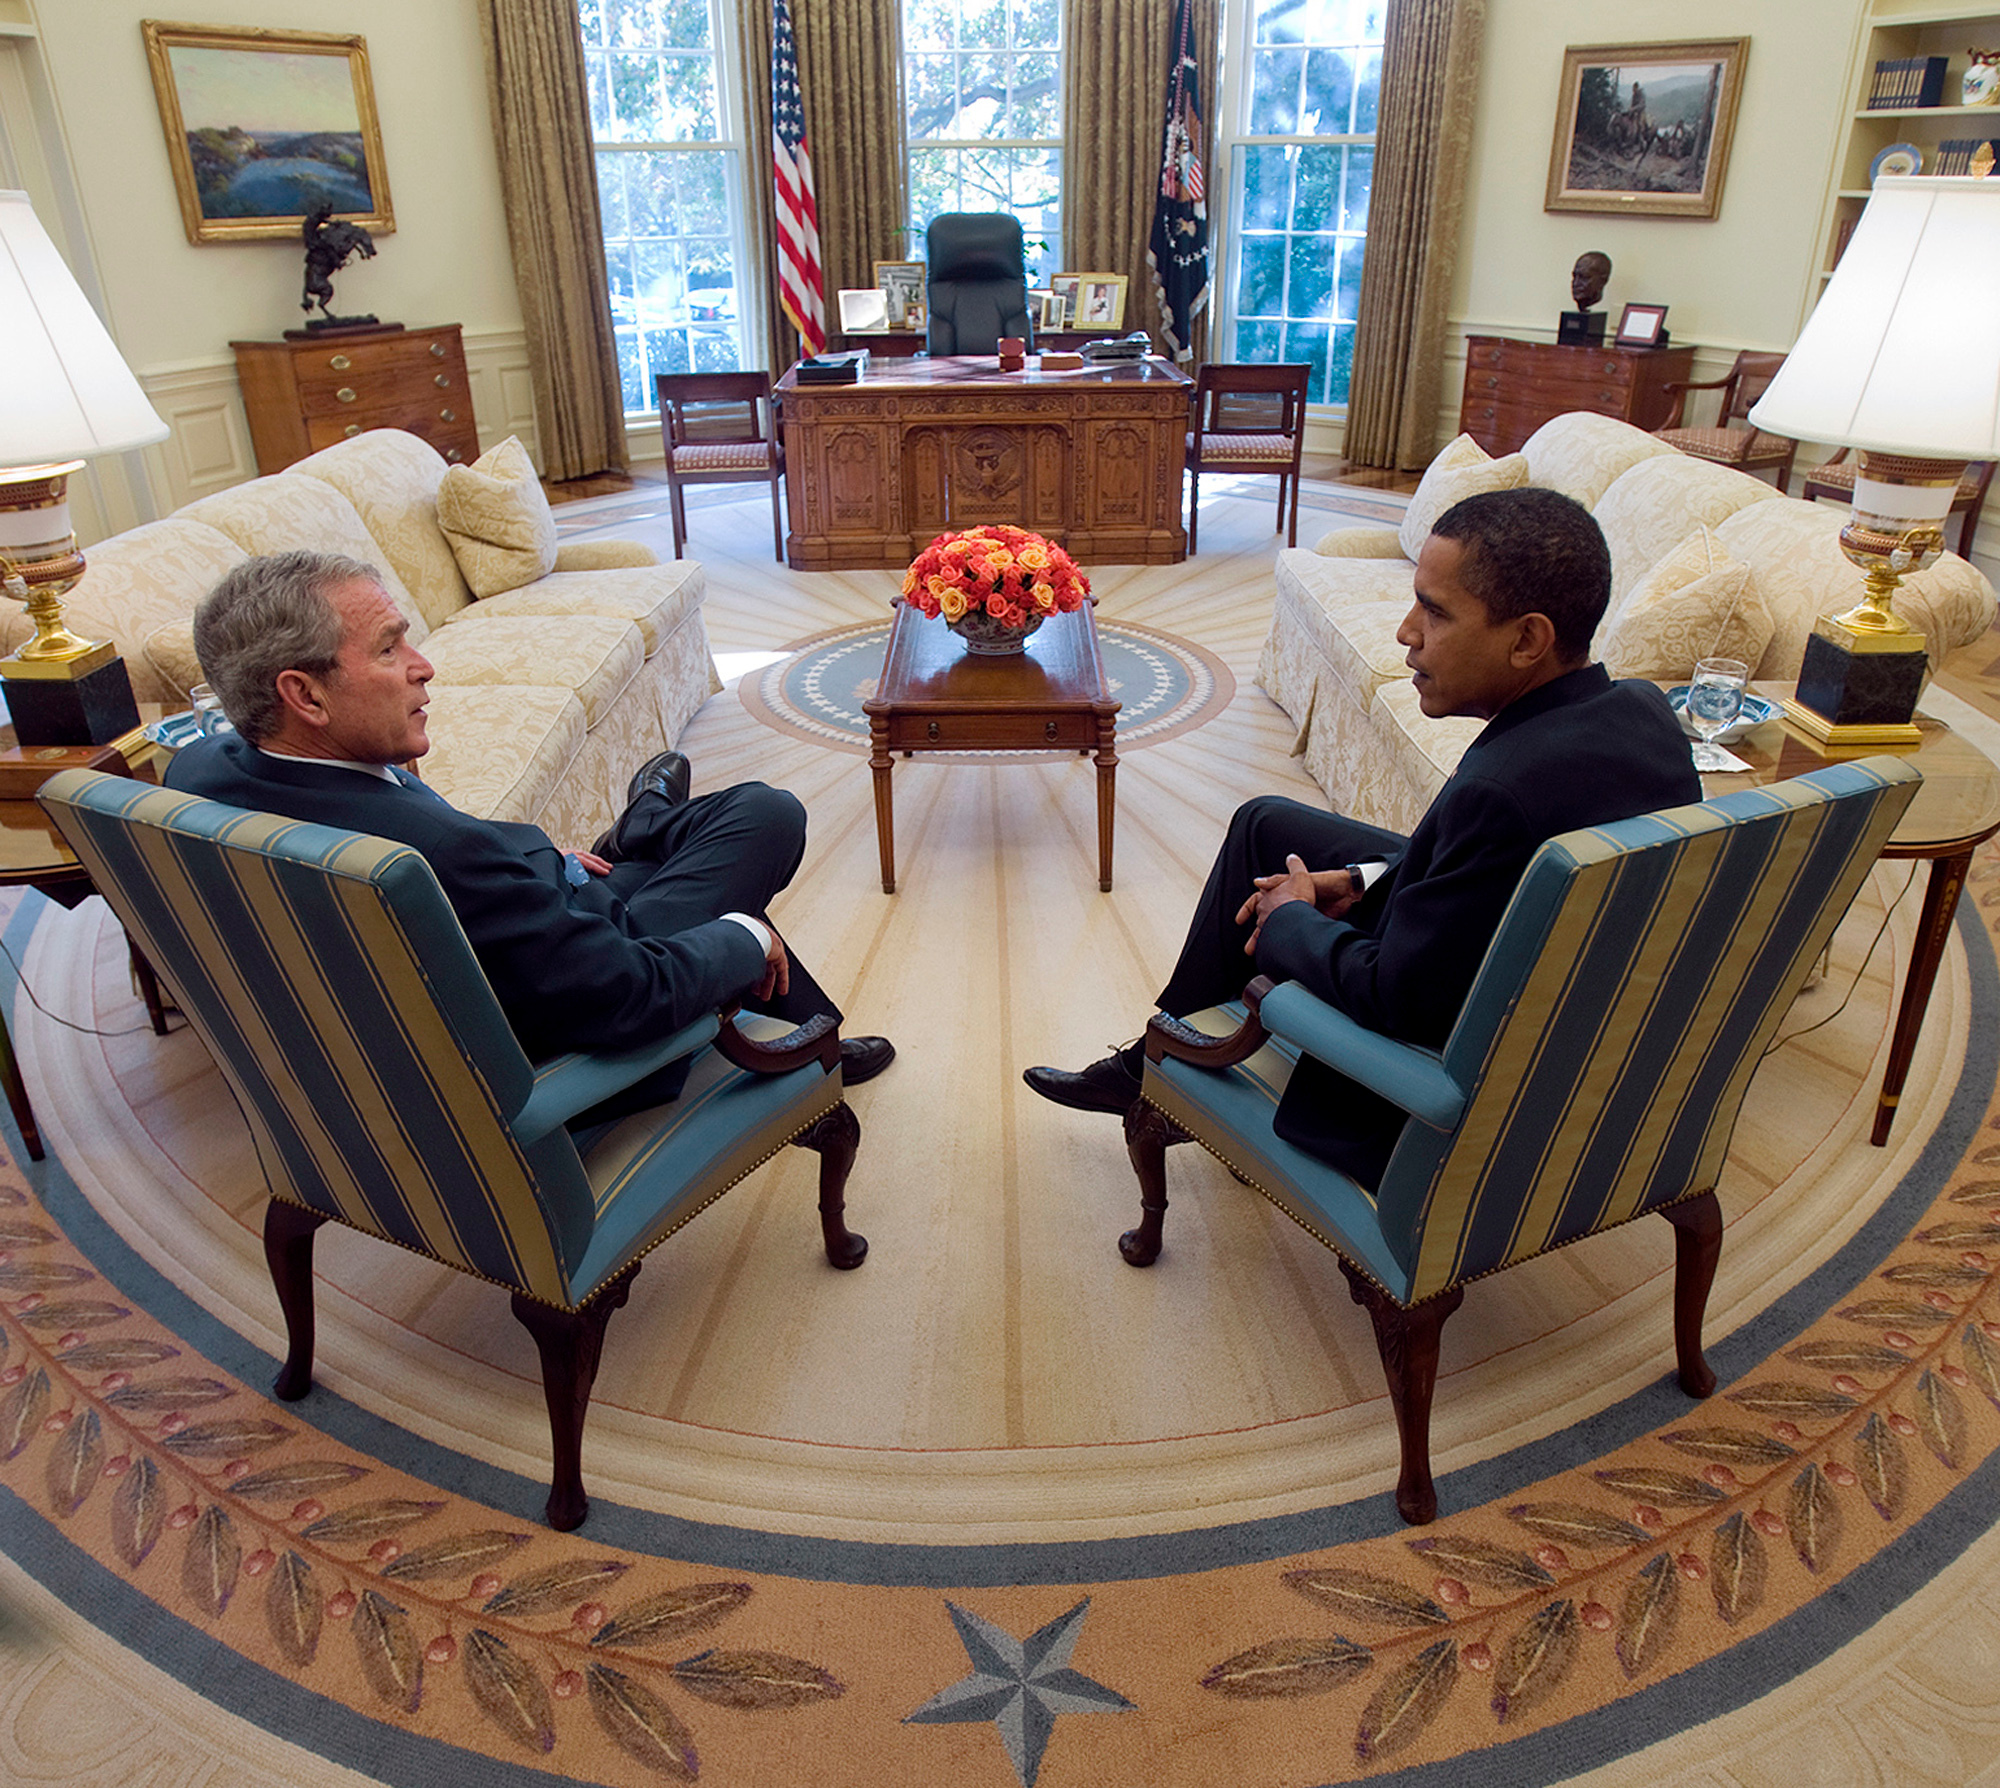 President George W. Bush and Barack Obama meet in Oval Office